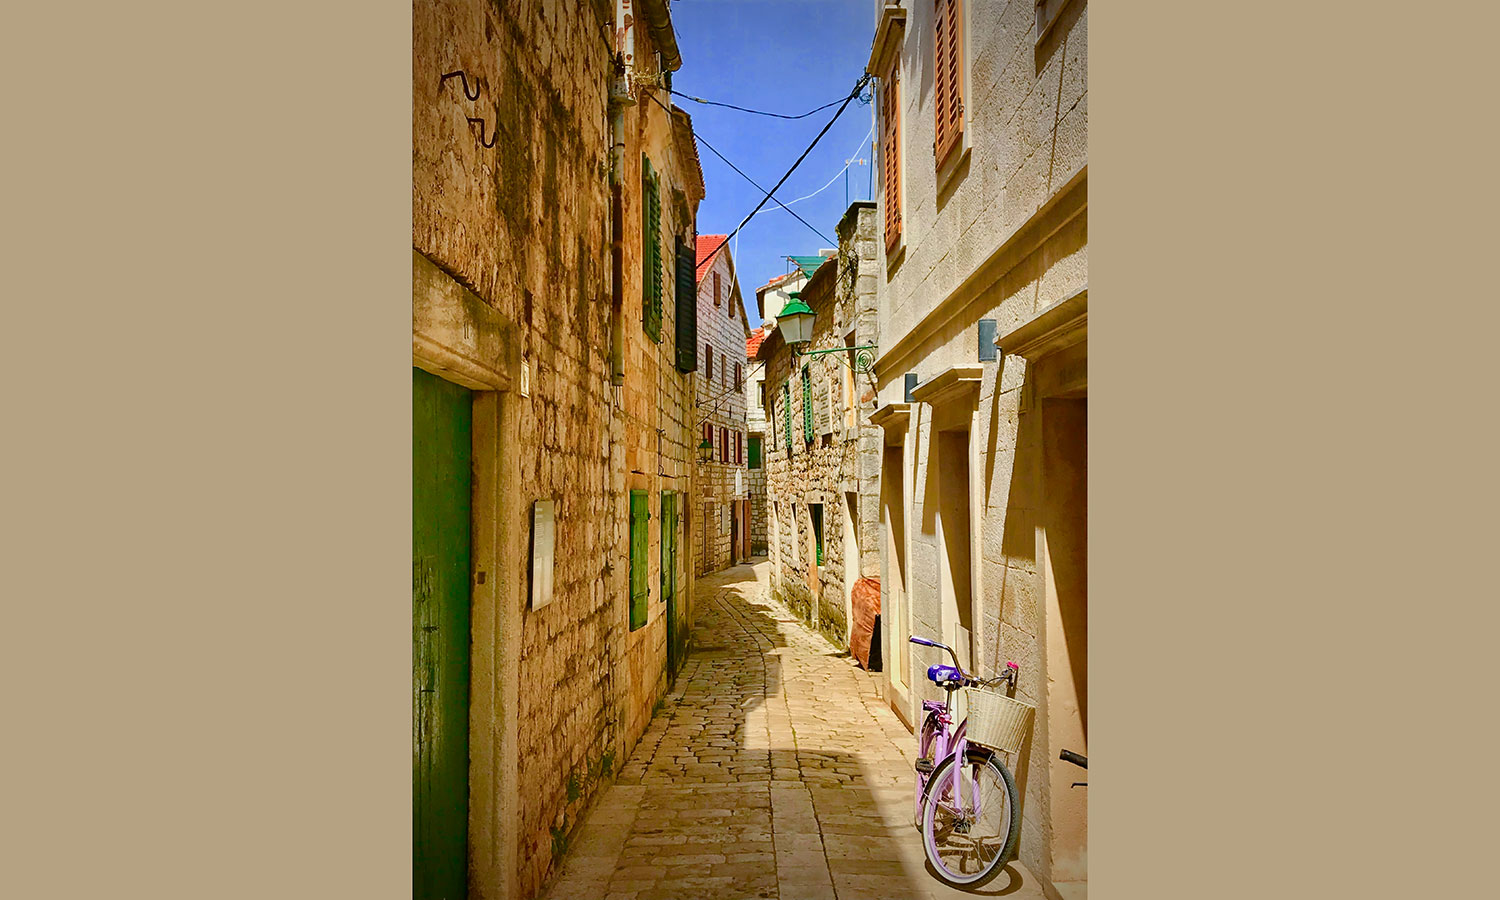 Street-life.-1st-place.-14.Street-Photography_Starigrad-Croatia_Alley-with-Pink-Bike